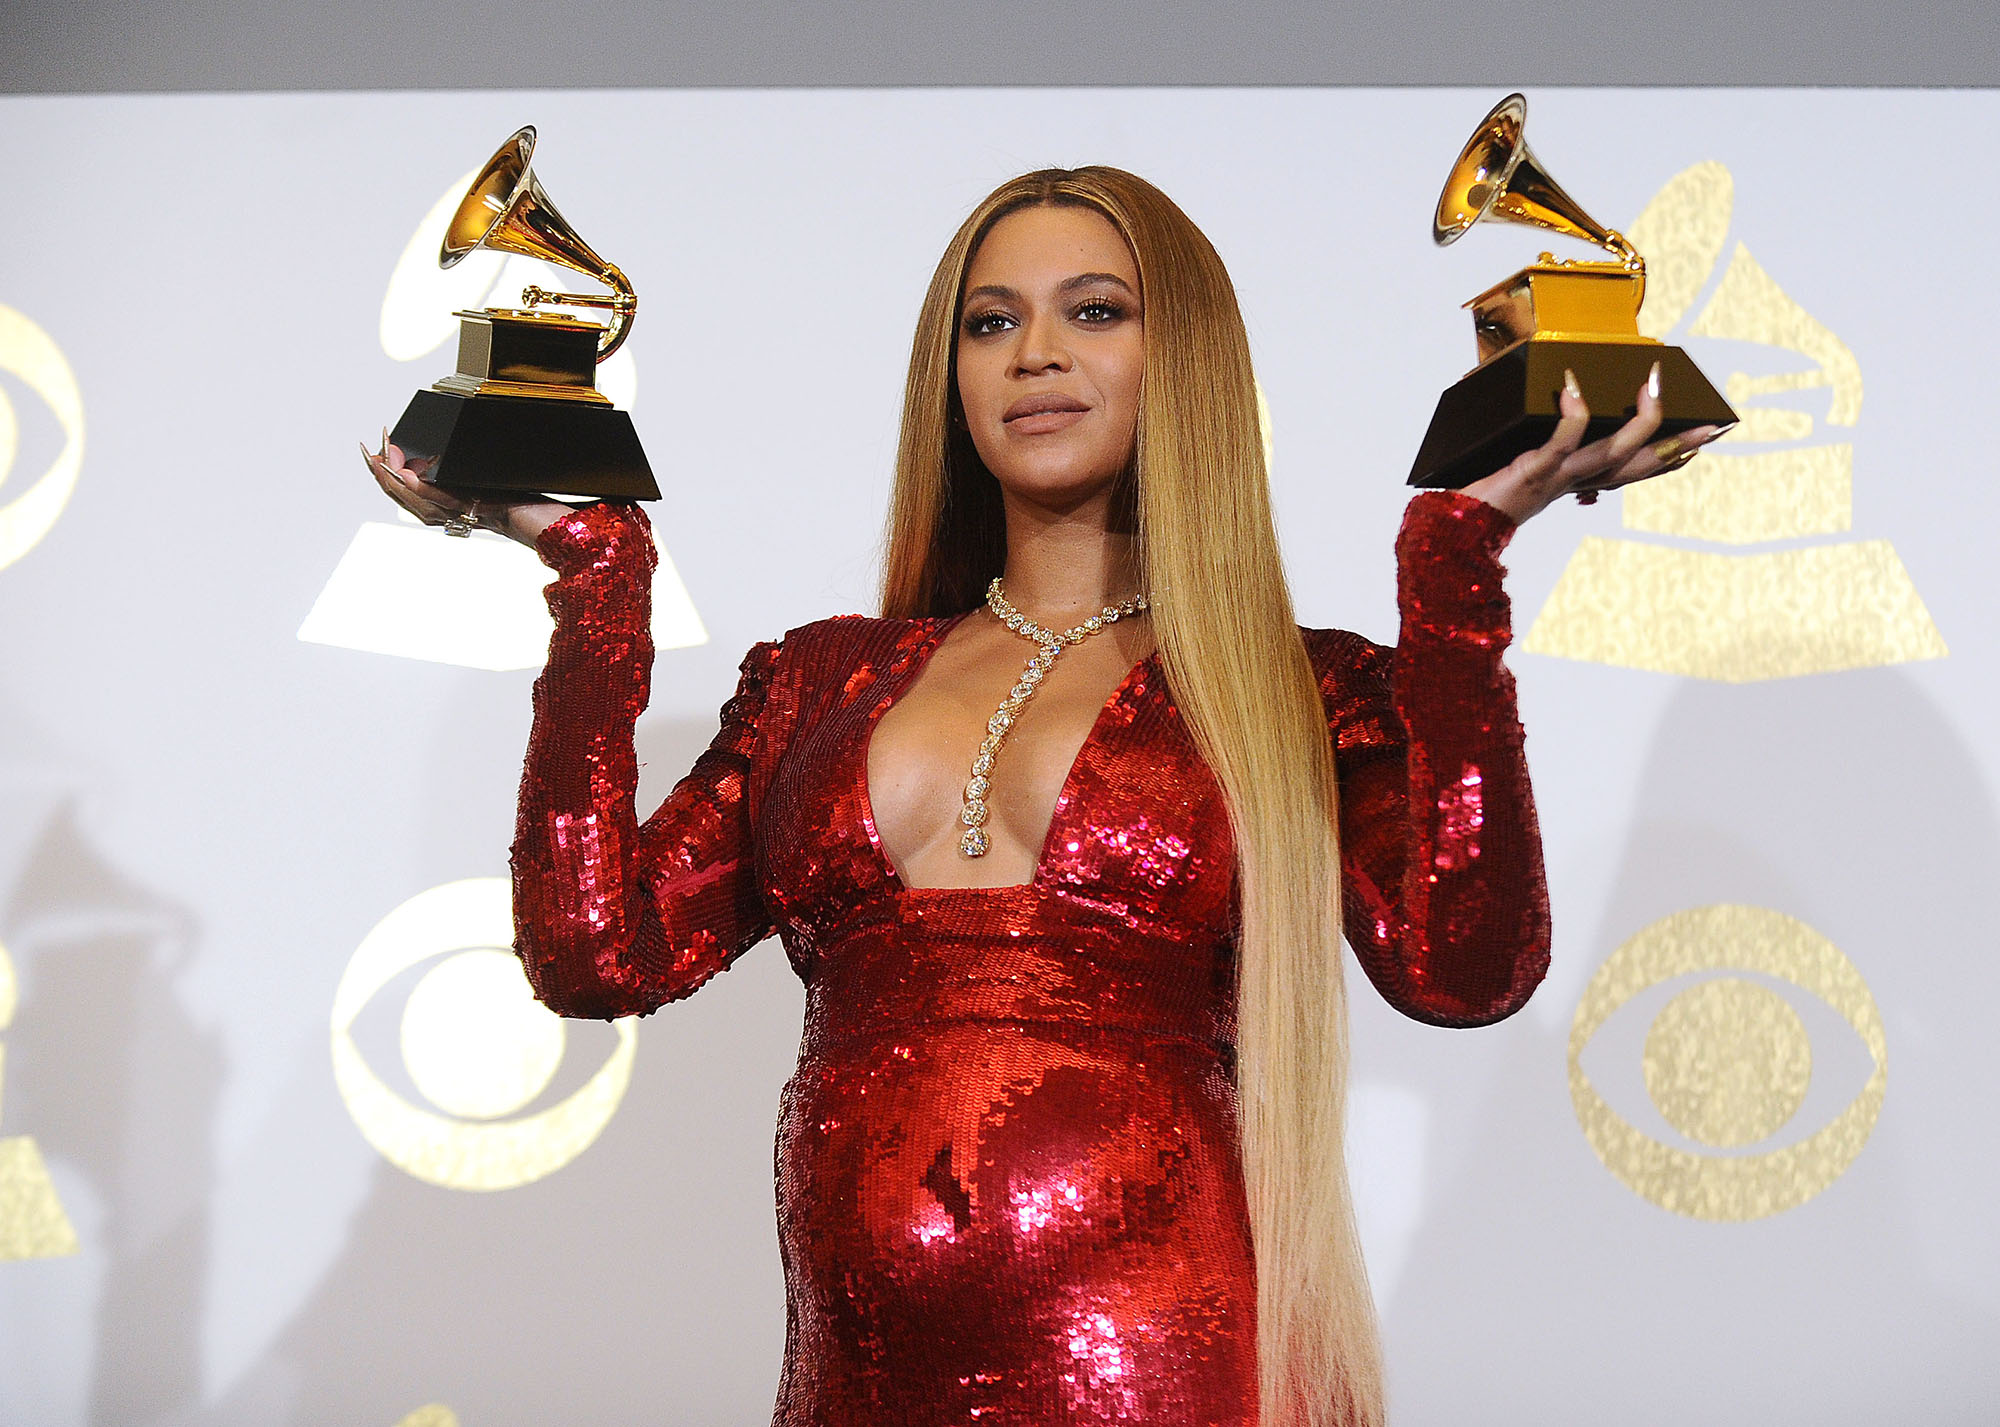 LOS ANGELES, CA - FEBRUARY 12:  Beyonce poses in the press room at the 59th GRAMMY Awards at Staples Center on February 12, 2017 in Los Angeles, California.  (Photo by Jason LaVeris/FilmMagic)